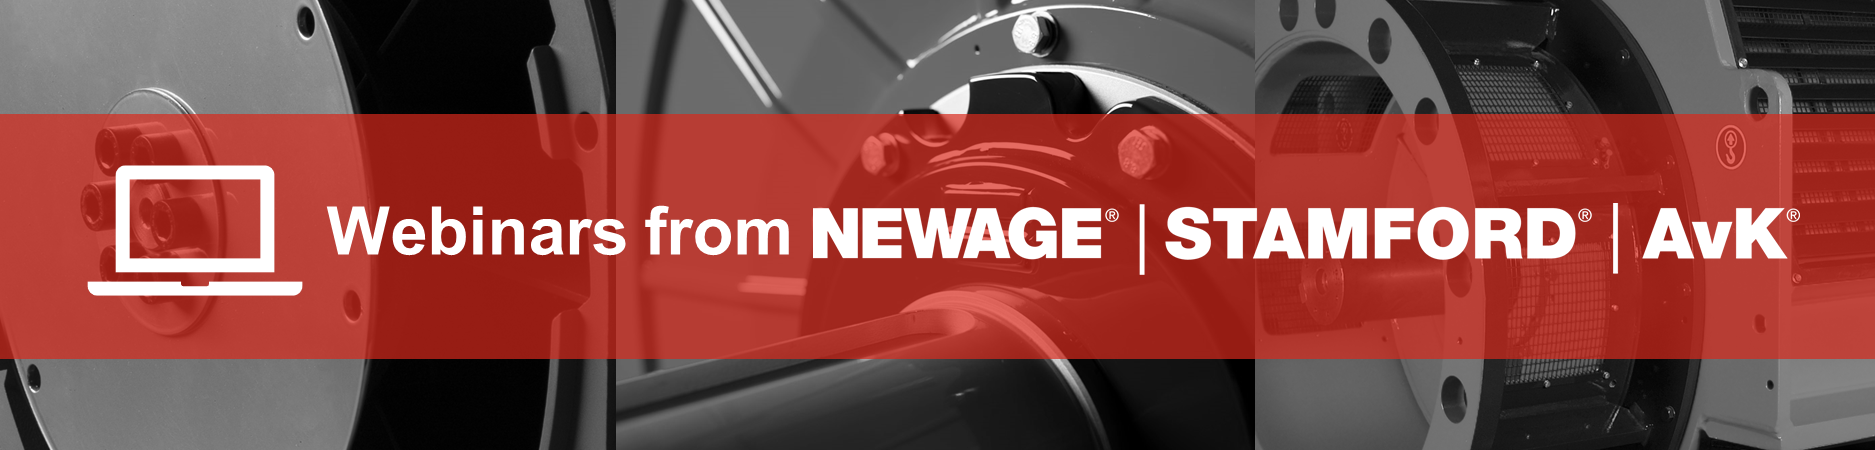 Webinars from NEWAGE® | STAMFORD® | AvK®